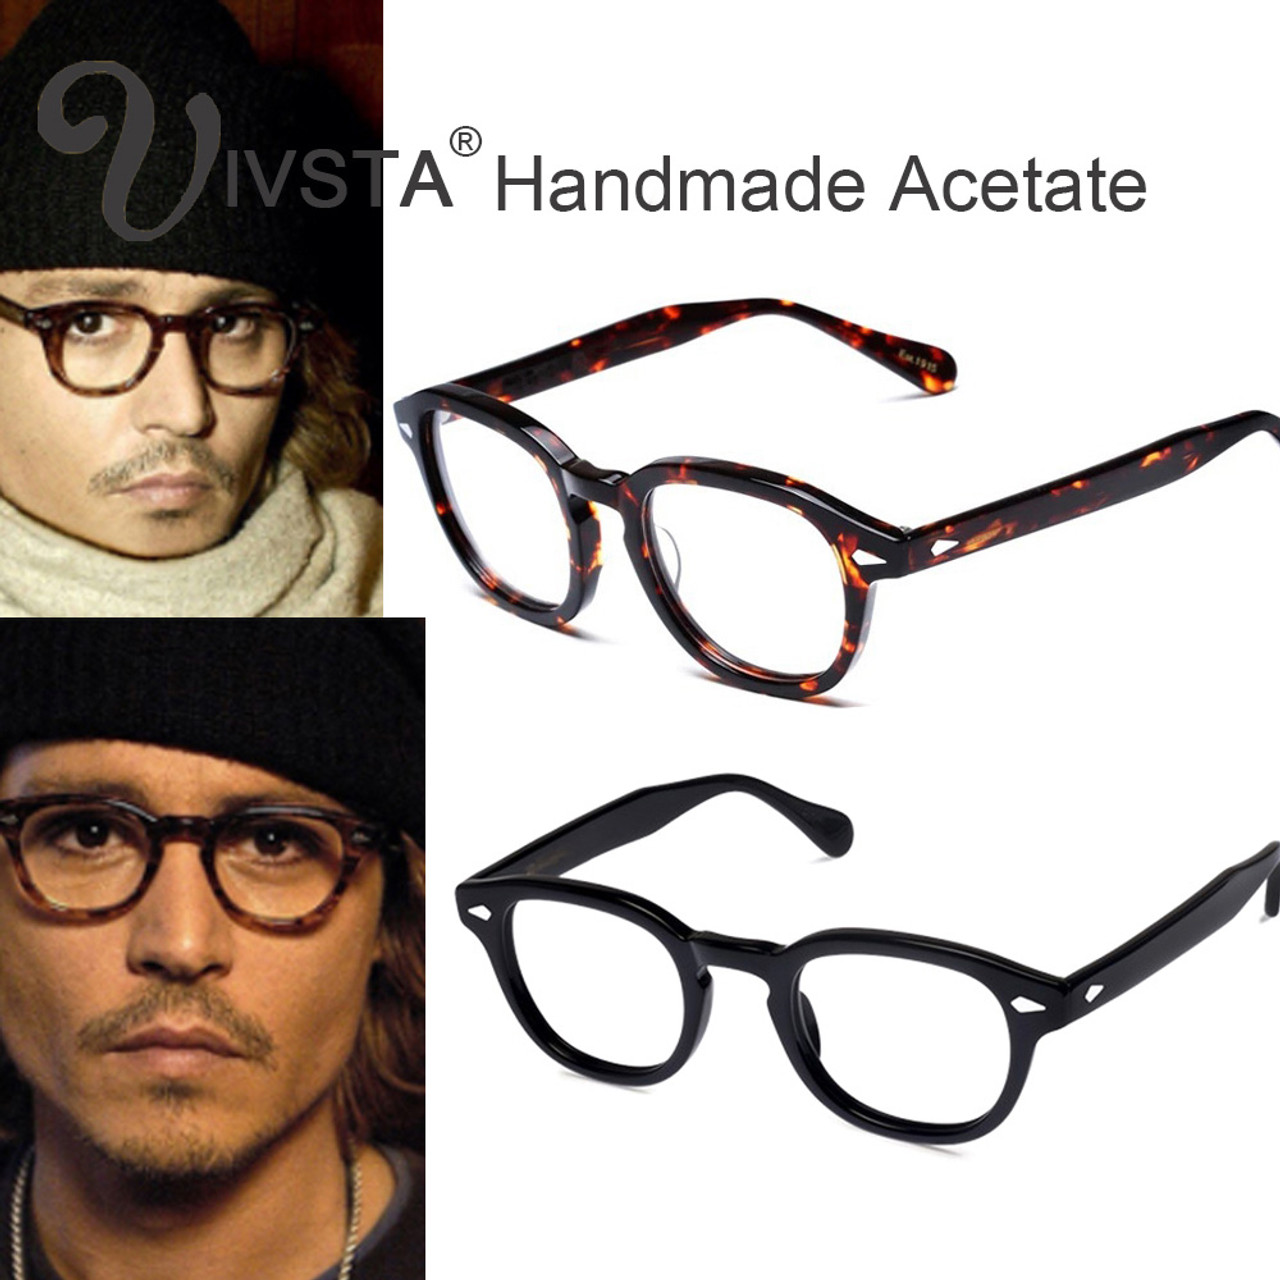 54dba7482dc IVSTA Mos Logo Handmade Acetate Frames Women Johnny Depp Glasses Men Brand  Designer Cellulose Tortoise Acetato Marca with Box - OnshopDeals.Com